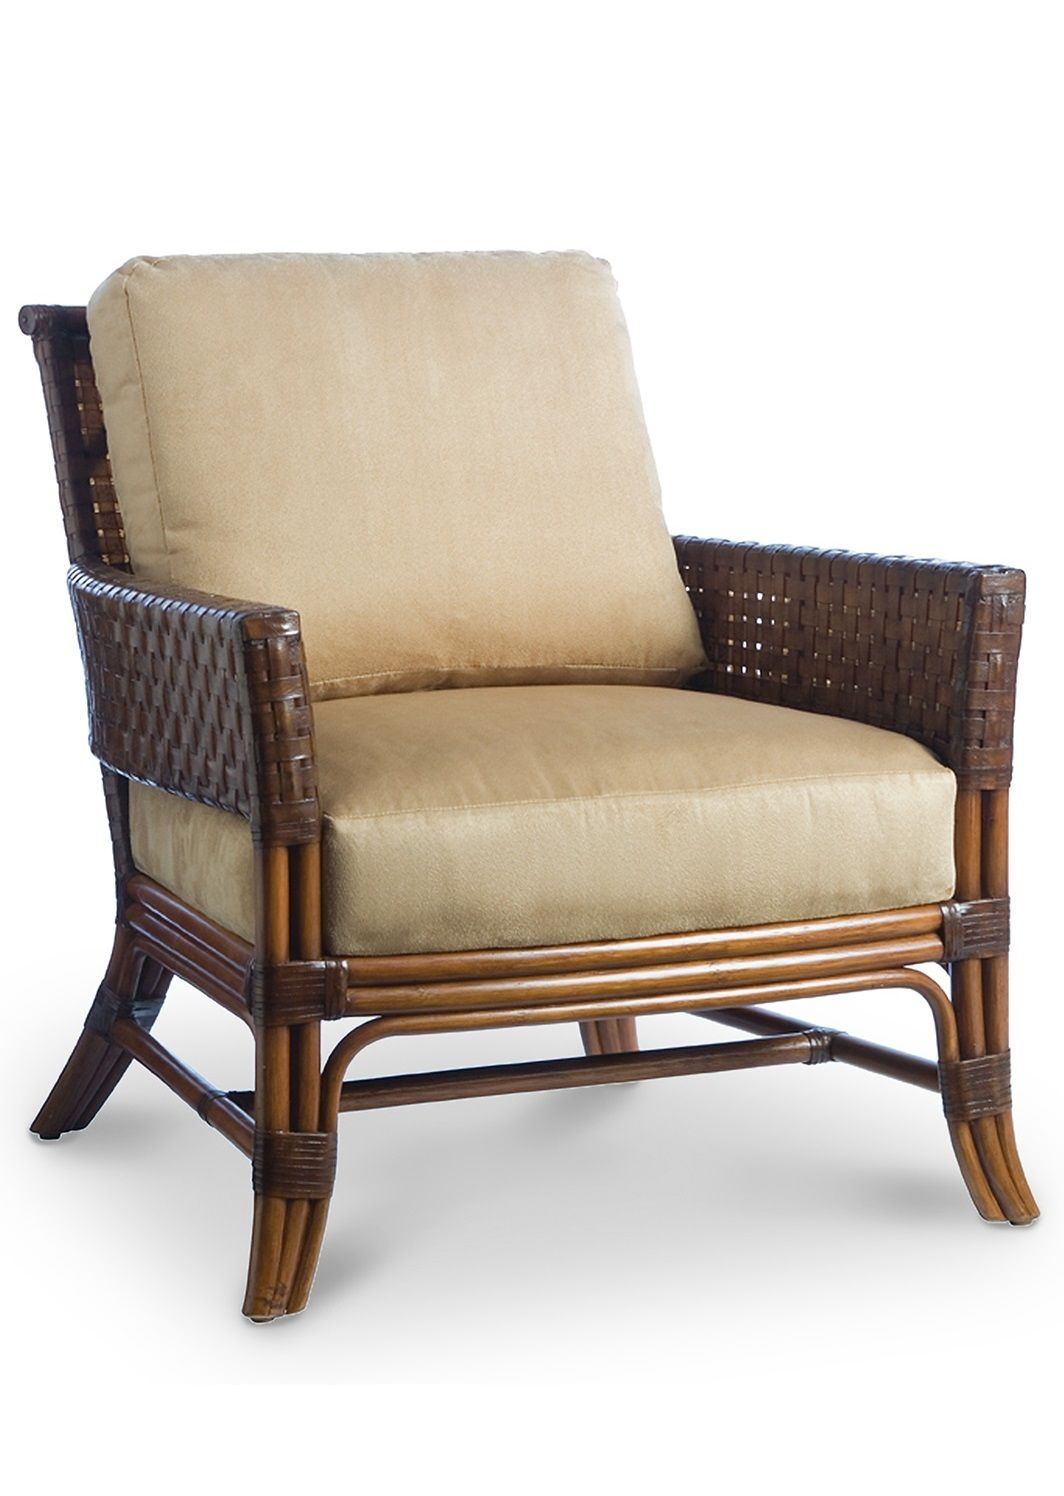 Hotel Chairs Rattan